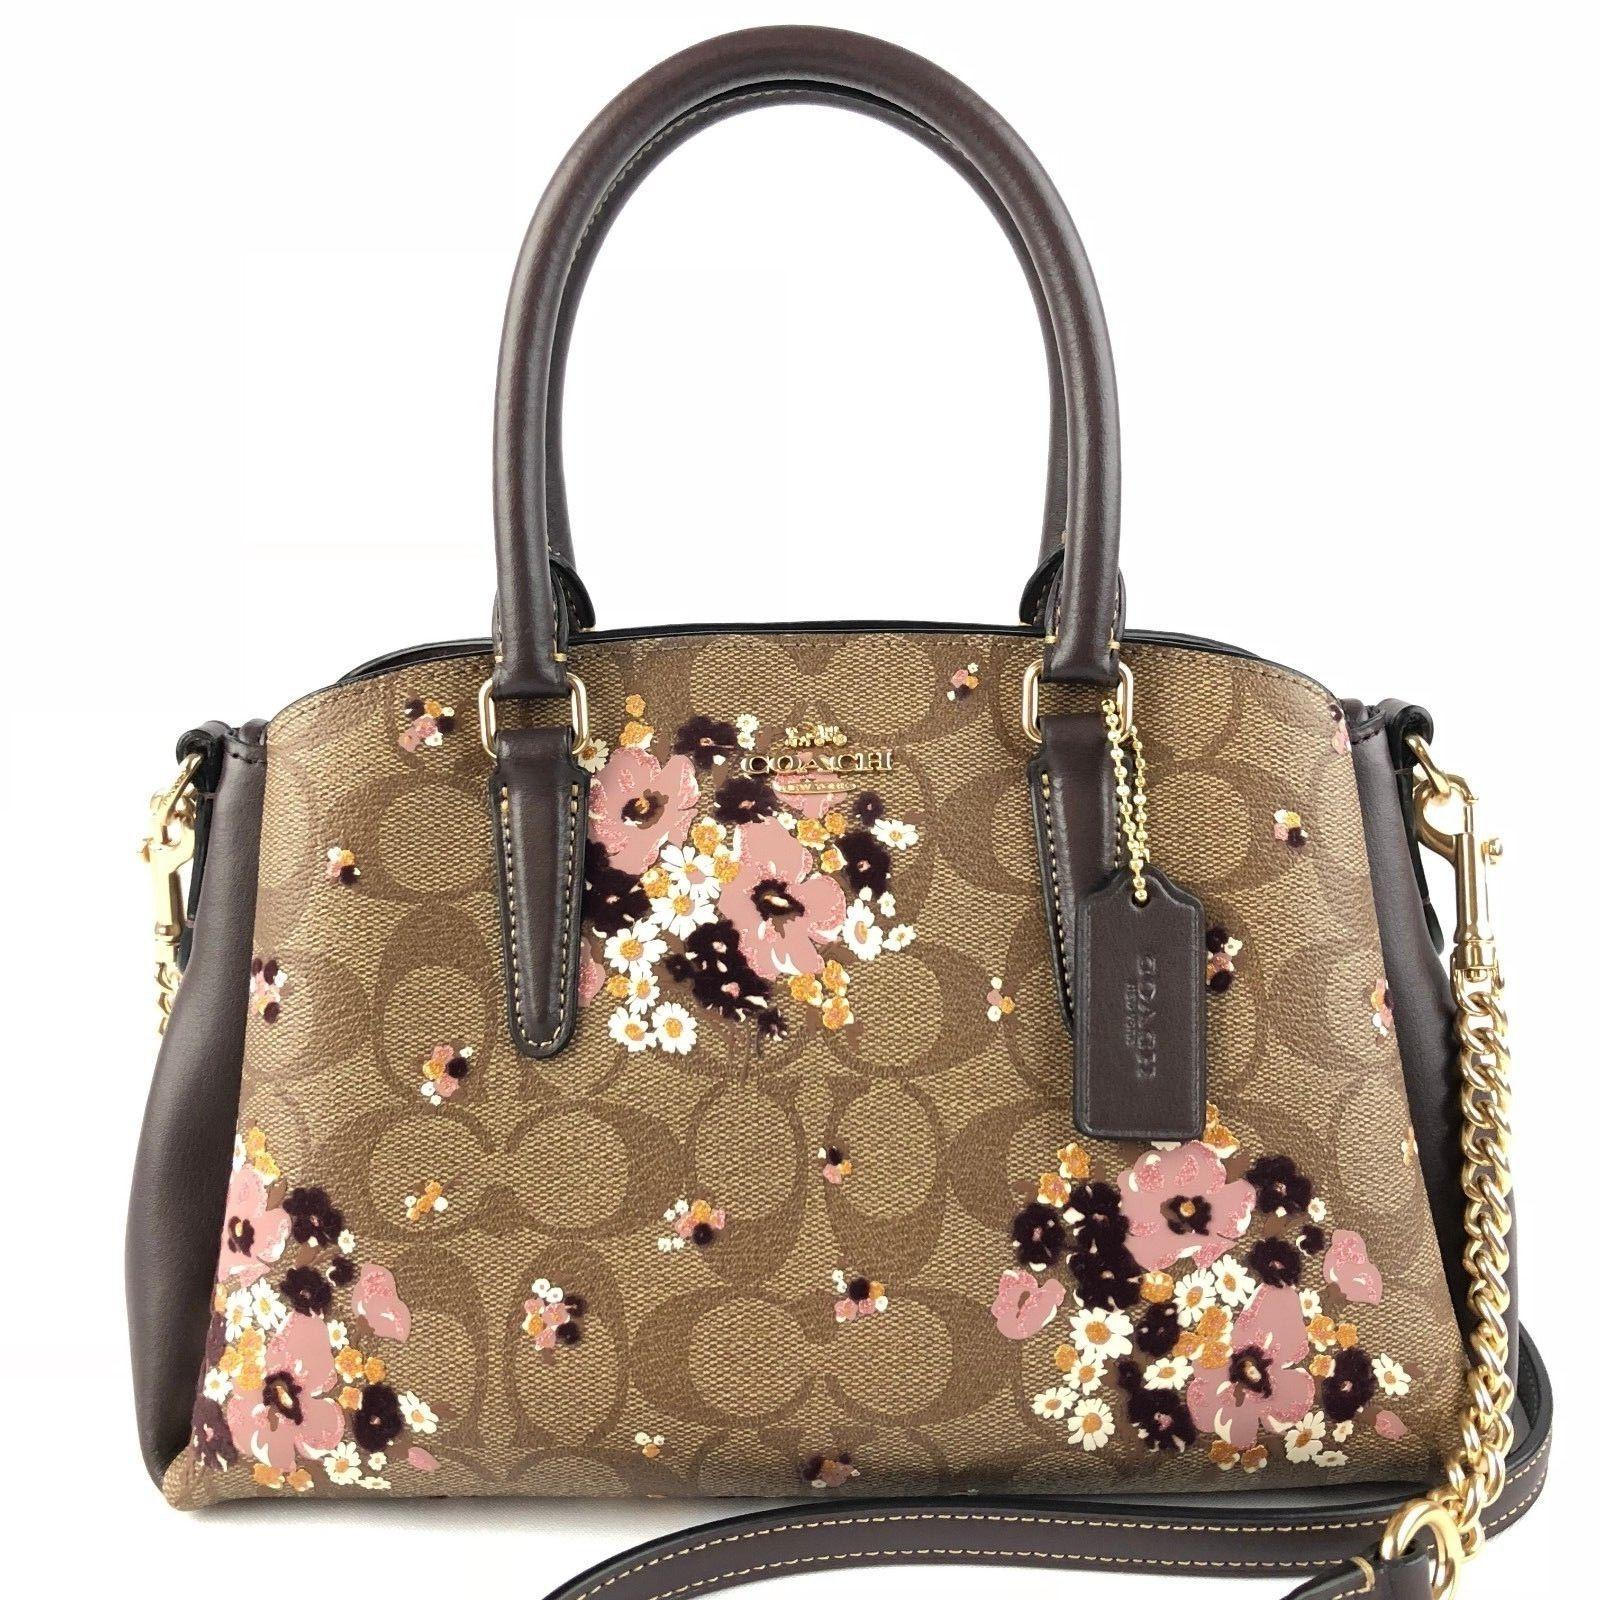 45c71b6fc40e2 ... coupon code for coach mini sage carryall sage f28970 satchel in multi  df3e7 a2fd1